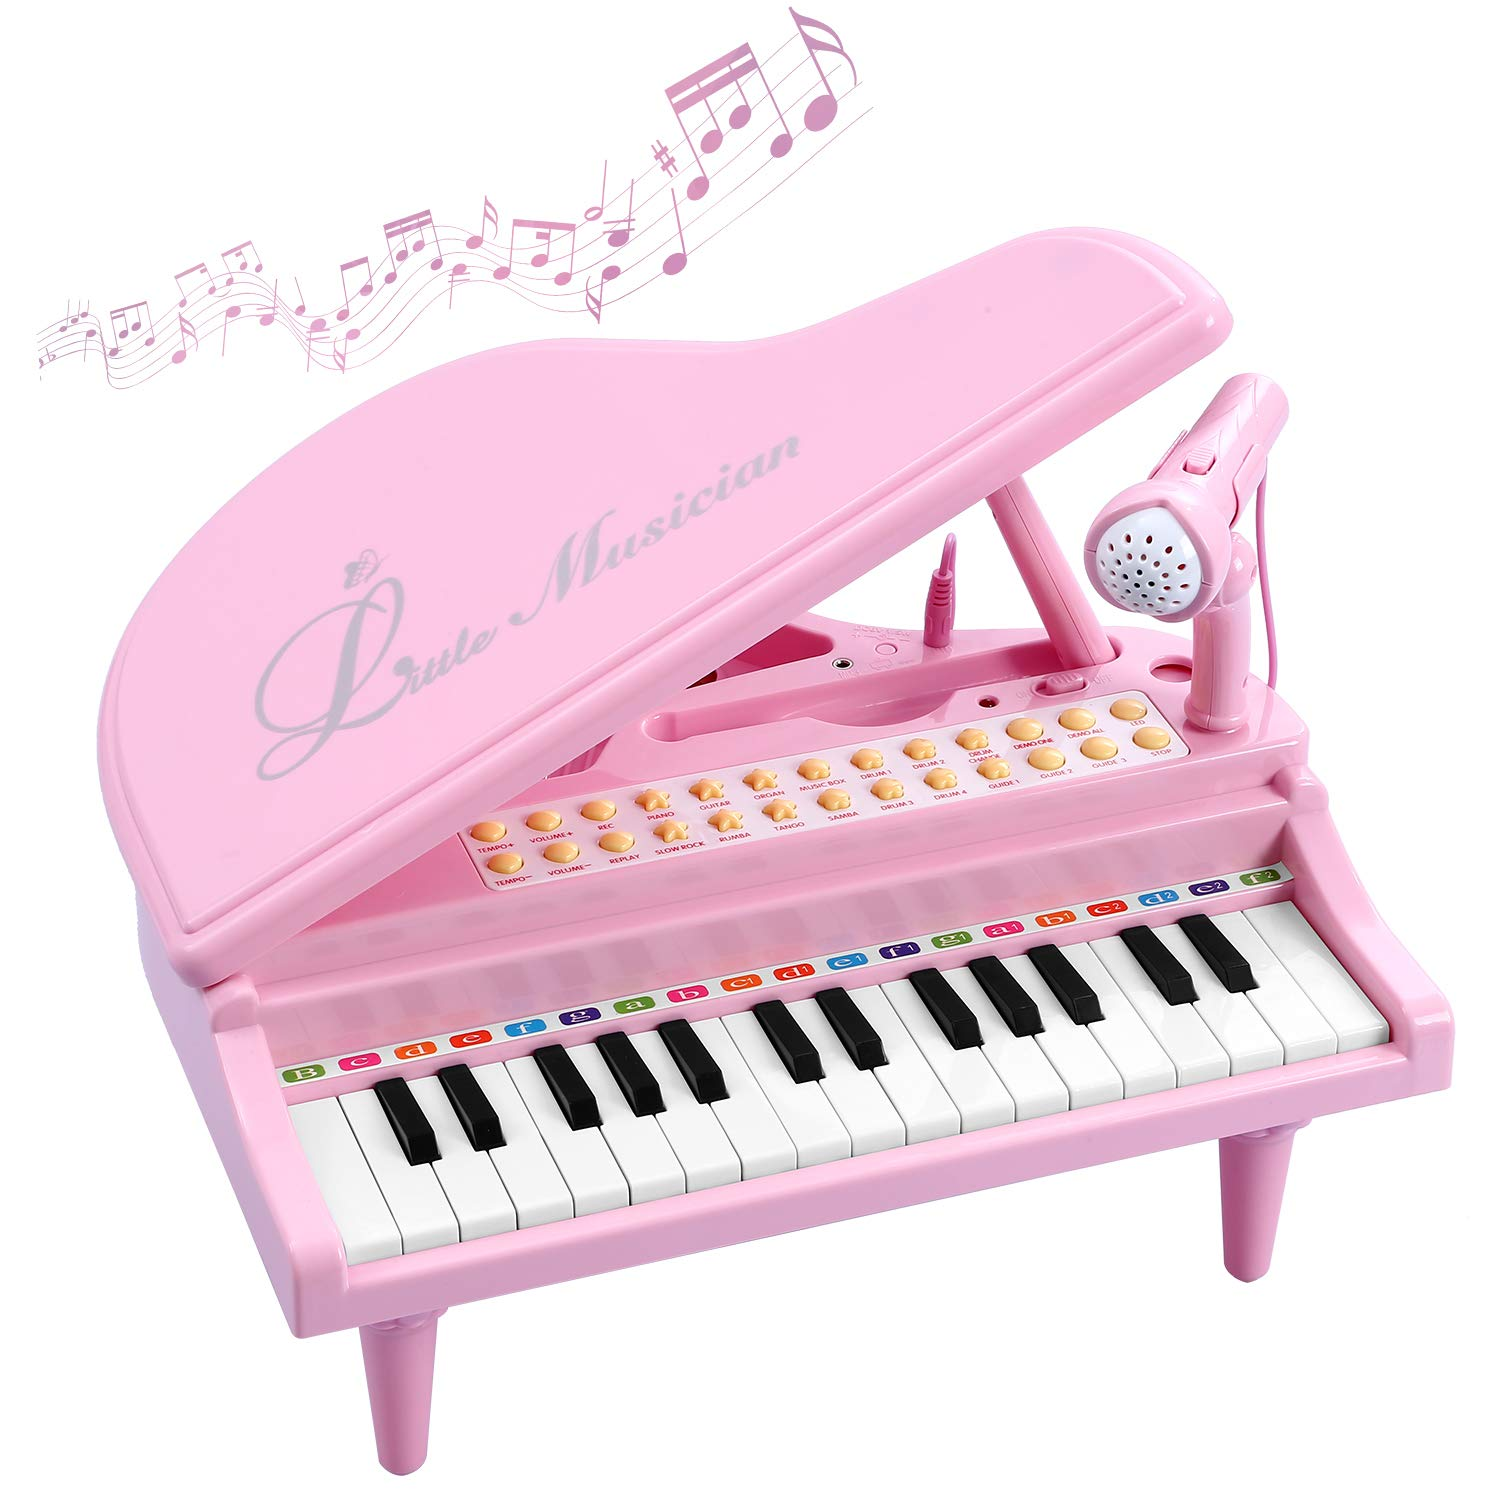 BAOLI Toy Piano for Kids - Birthday Gift for 3 4 5 6 Year Old Girl - Educational Piano Musical Instrument Toys - Keyboard for Child with Built-in Microphone & Music Modes 31 Keys